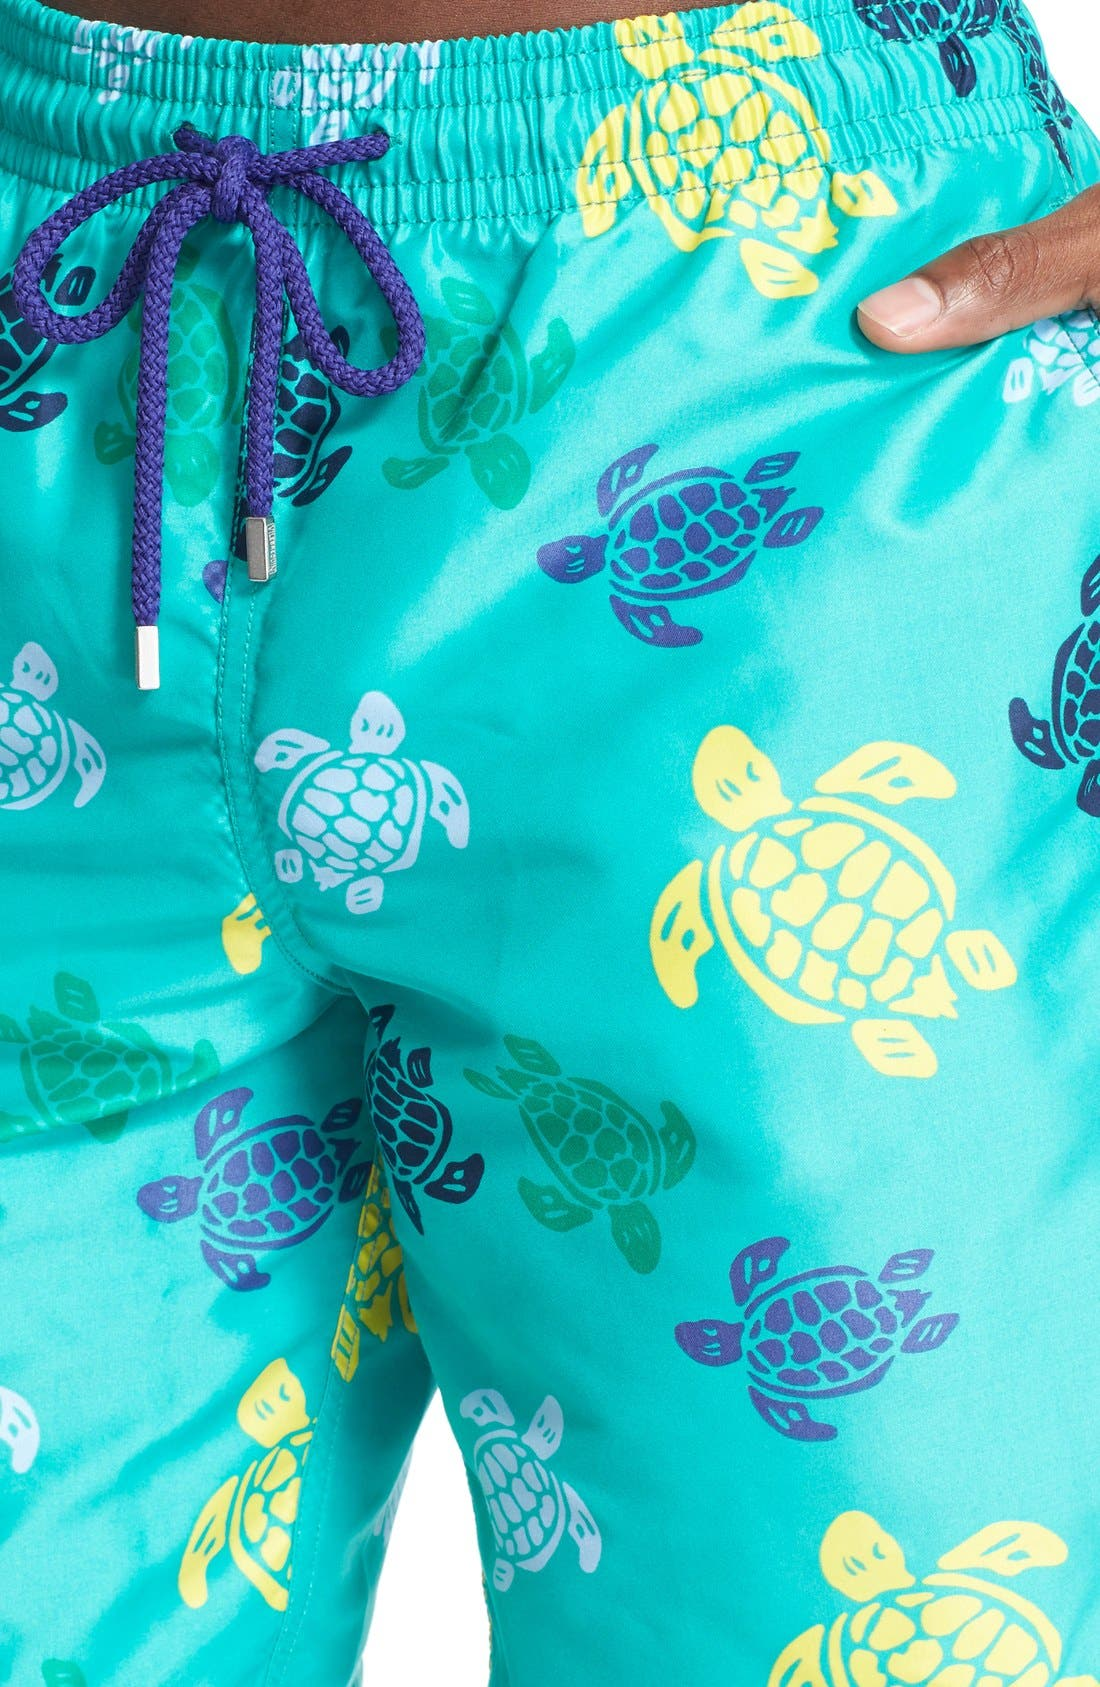 'Okoa' Turtle Print Swim Trunks,                             Alternate thumbnail 5, color,                             348